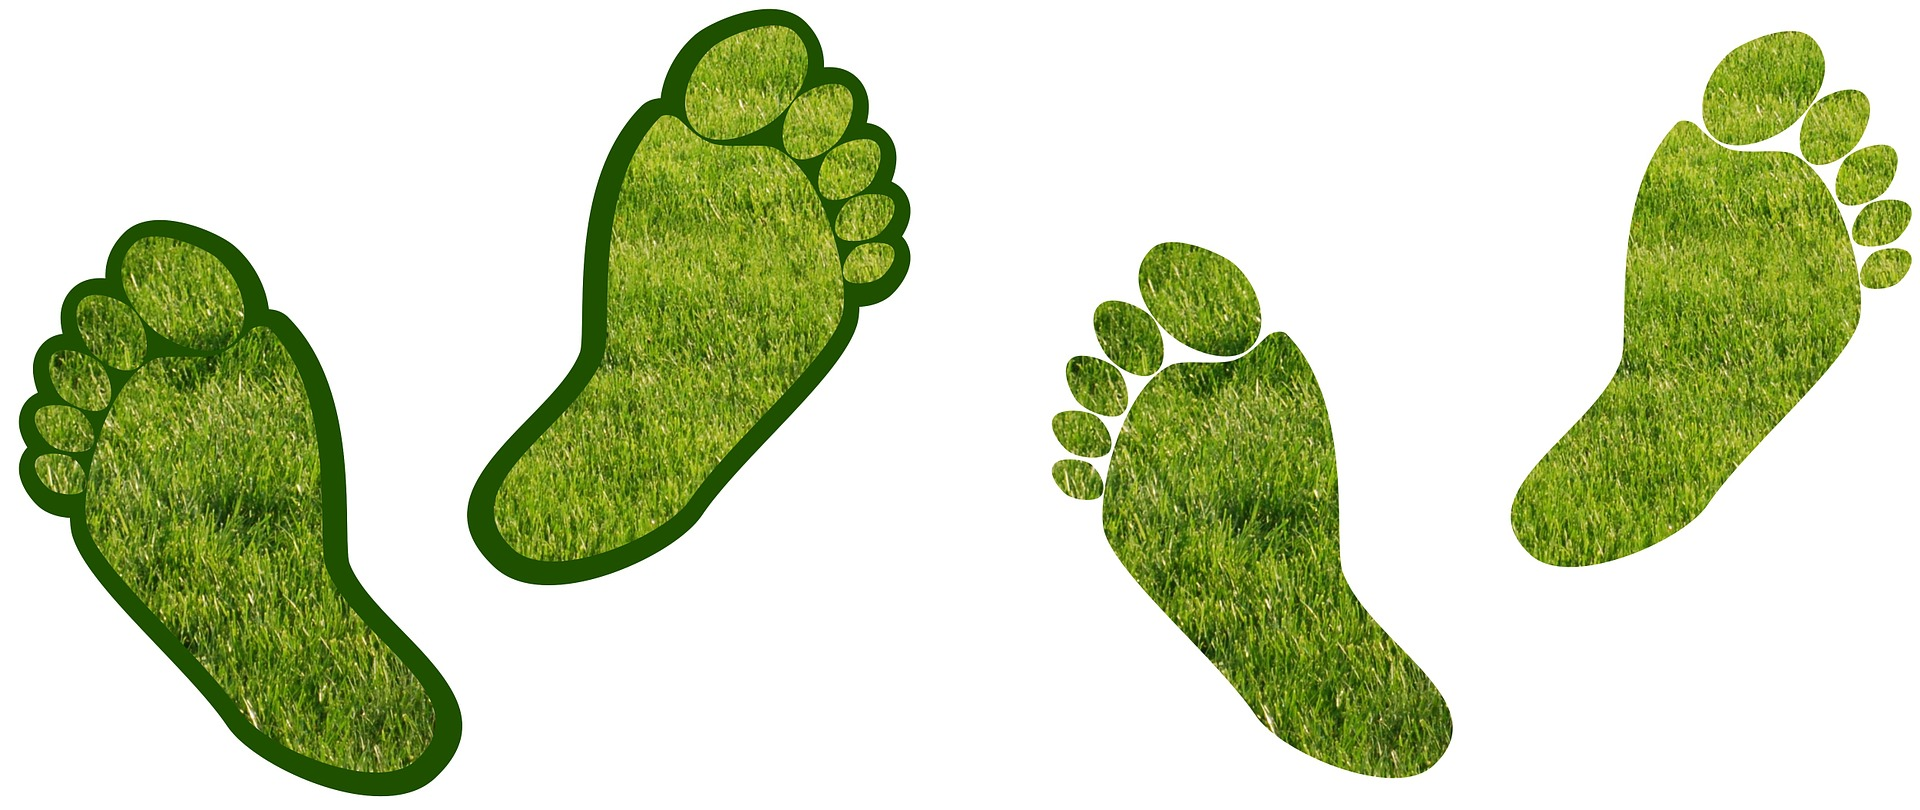 Carbon Footprint, trekking, hiking, pollution, clean, green, nature, camping, organic, trek, mountains, forests, rivers, glaciers, global warming, climate change